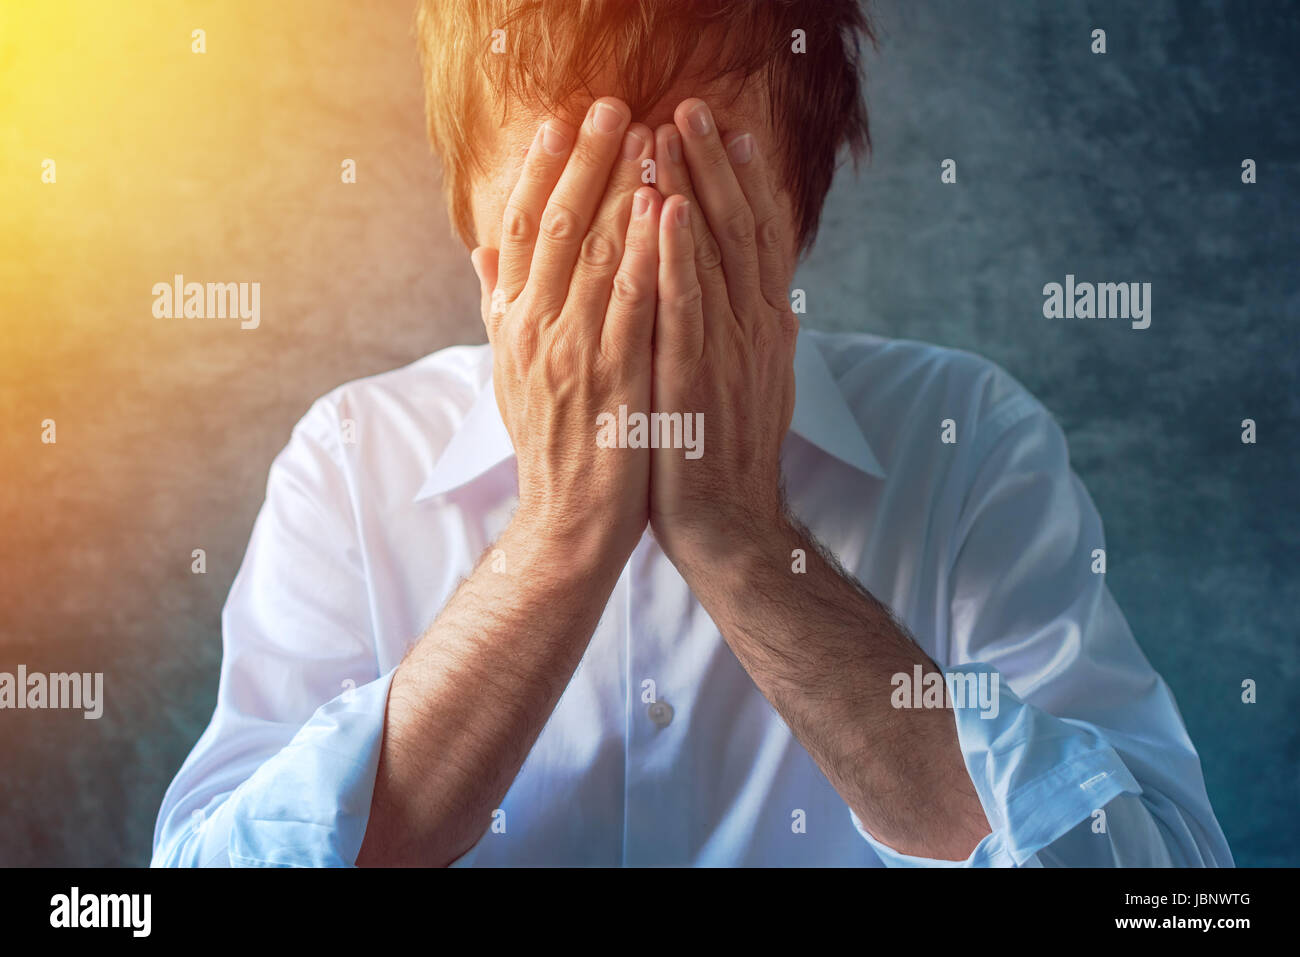 Hopeless depressive businessman in white shirt with roll up sleeves, hands covering face, crying in despair - Stock Image